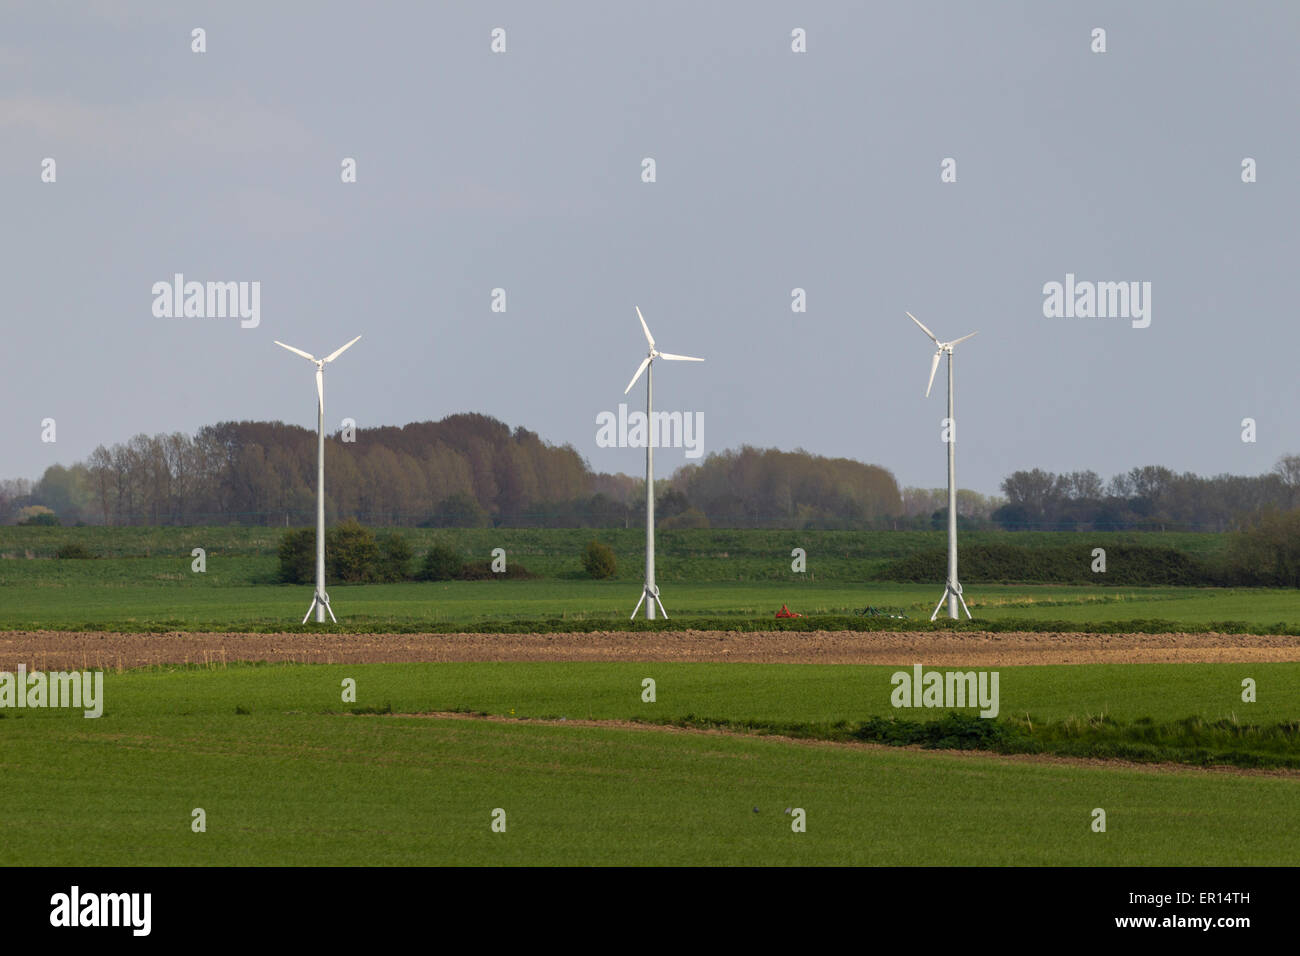 Wind turbines can be used for both generating electricity and pumping water to drain the land - Stock Image